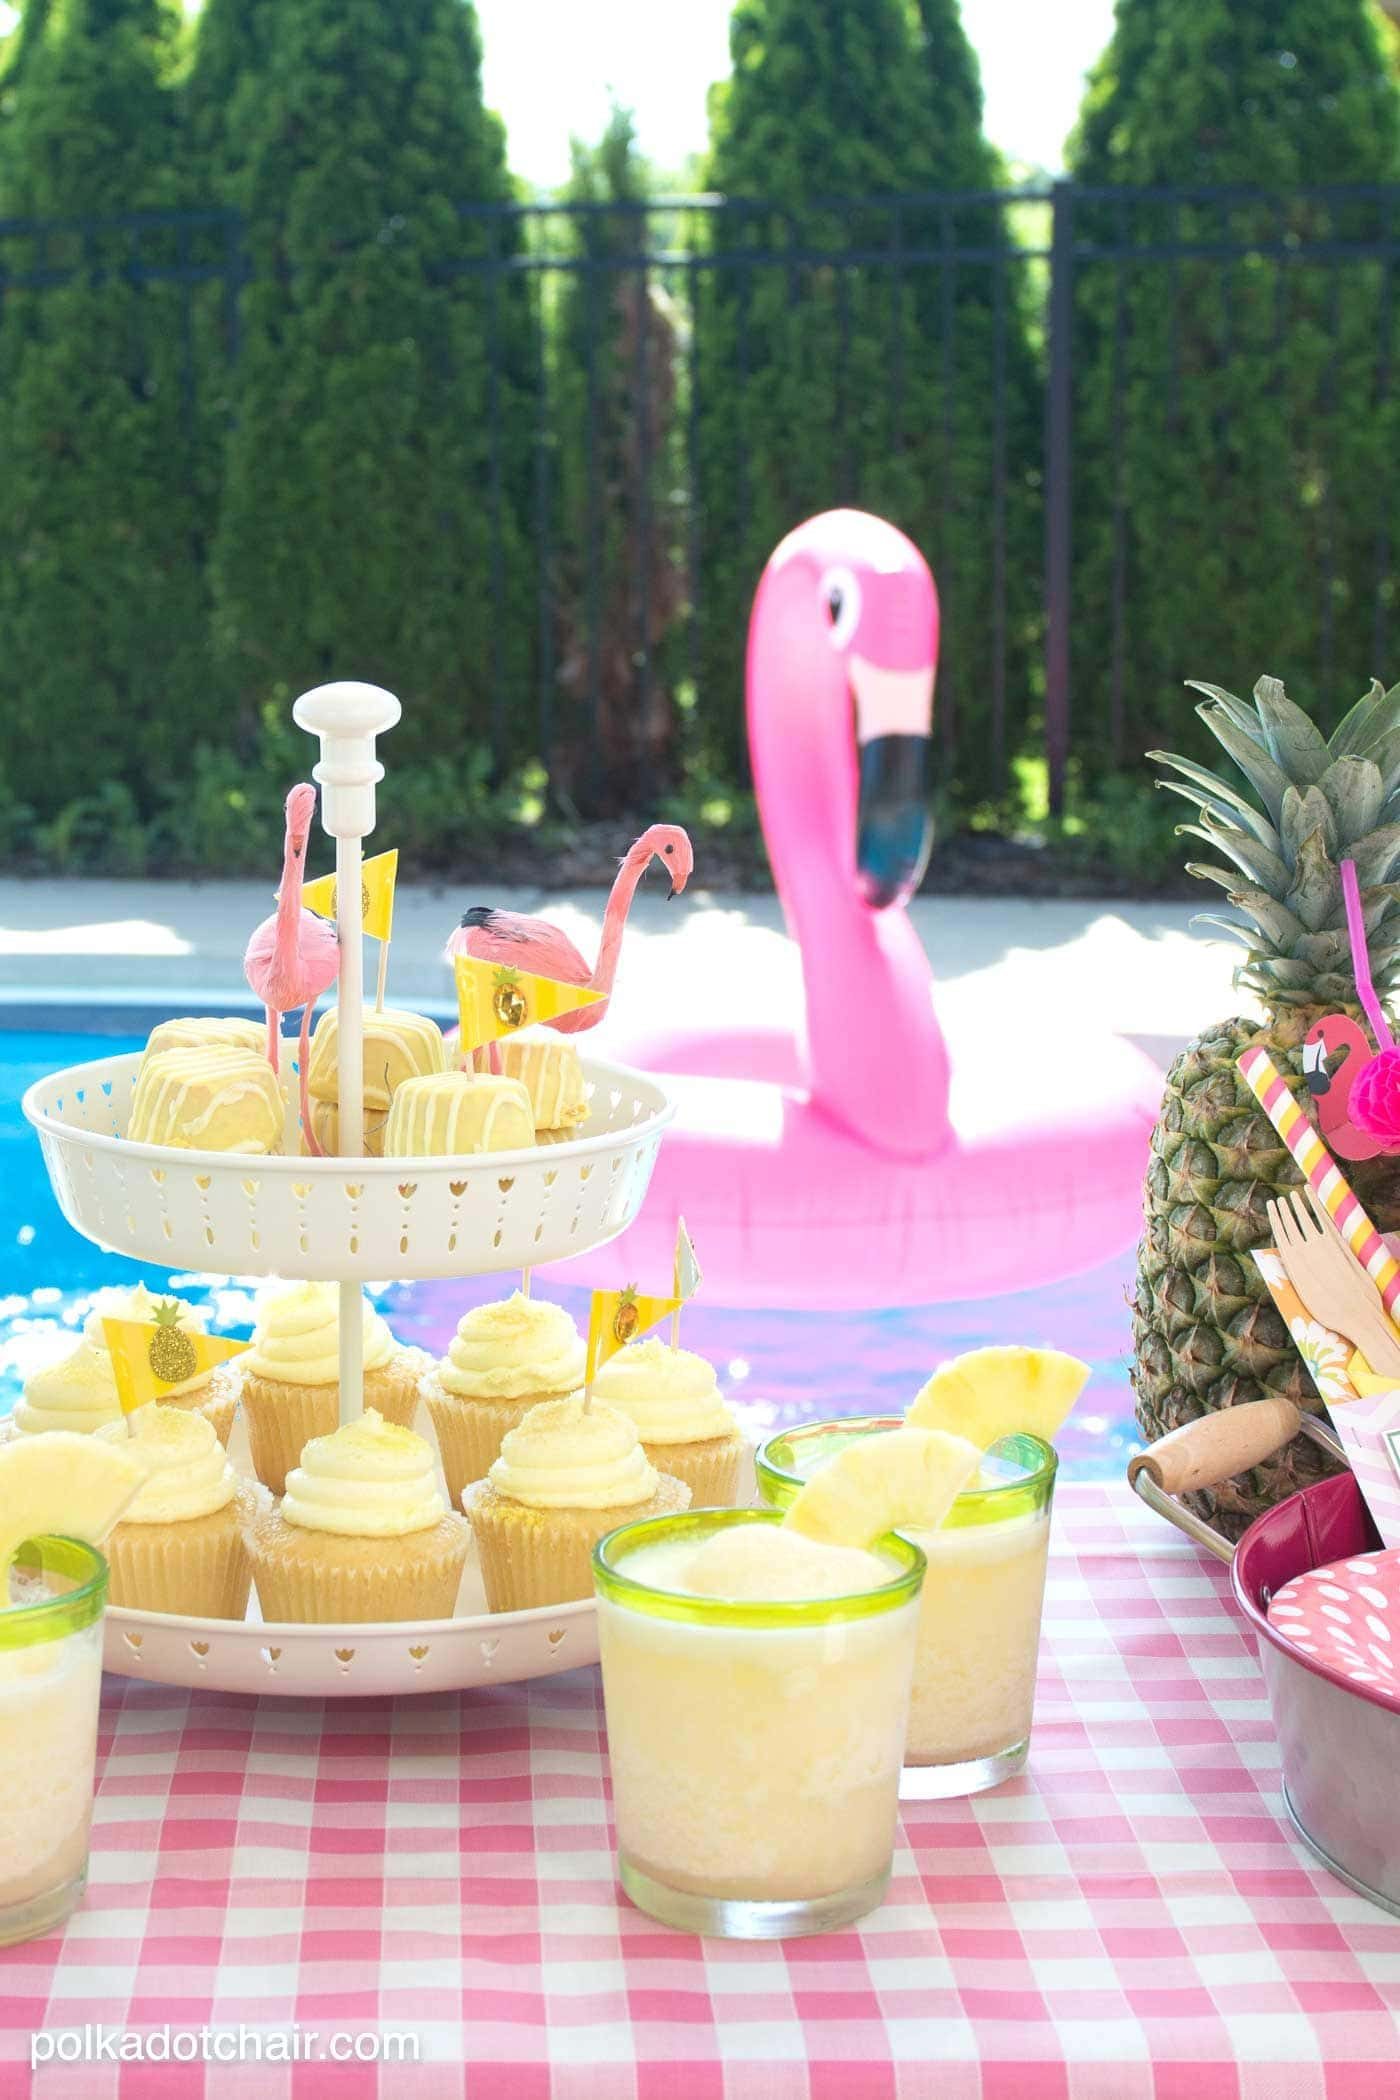 Backyard Party Ideas never underestimate the glamour of white christmas lights backyard weddingsoutdoor weddingsgarden weddingsbackyard partiesbackyard ideassummer Big Backyard Party Ideas Lots Of Fun Ideas To Throw A Backyard Flamingo Themed Pool